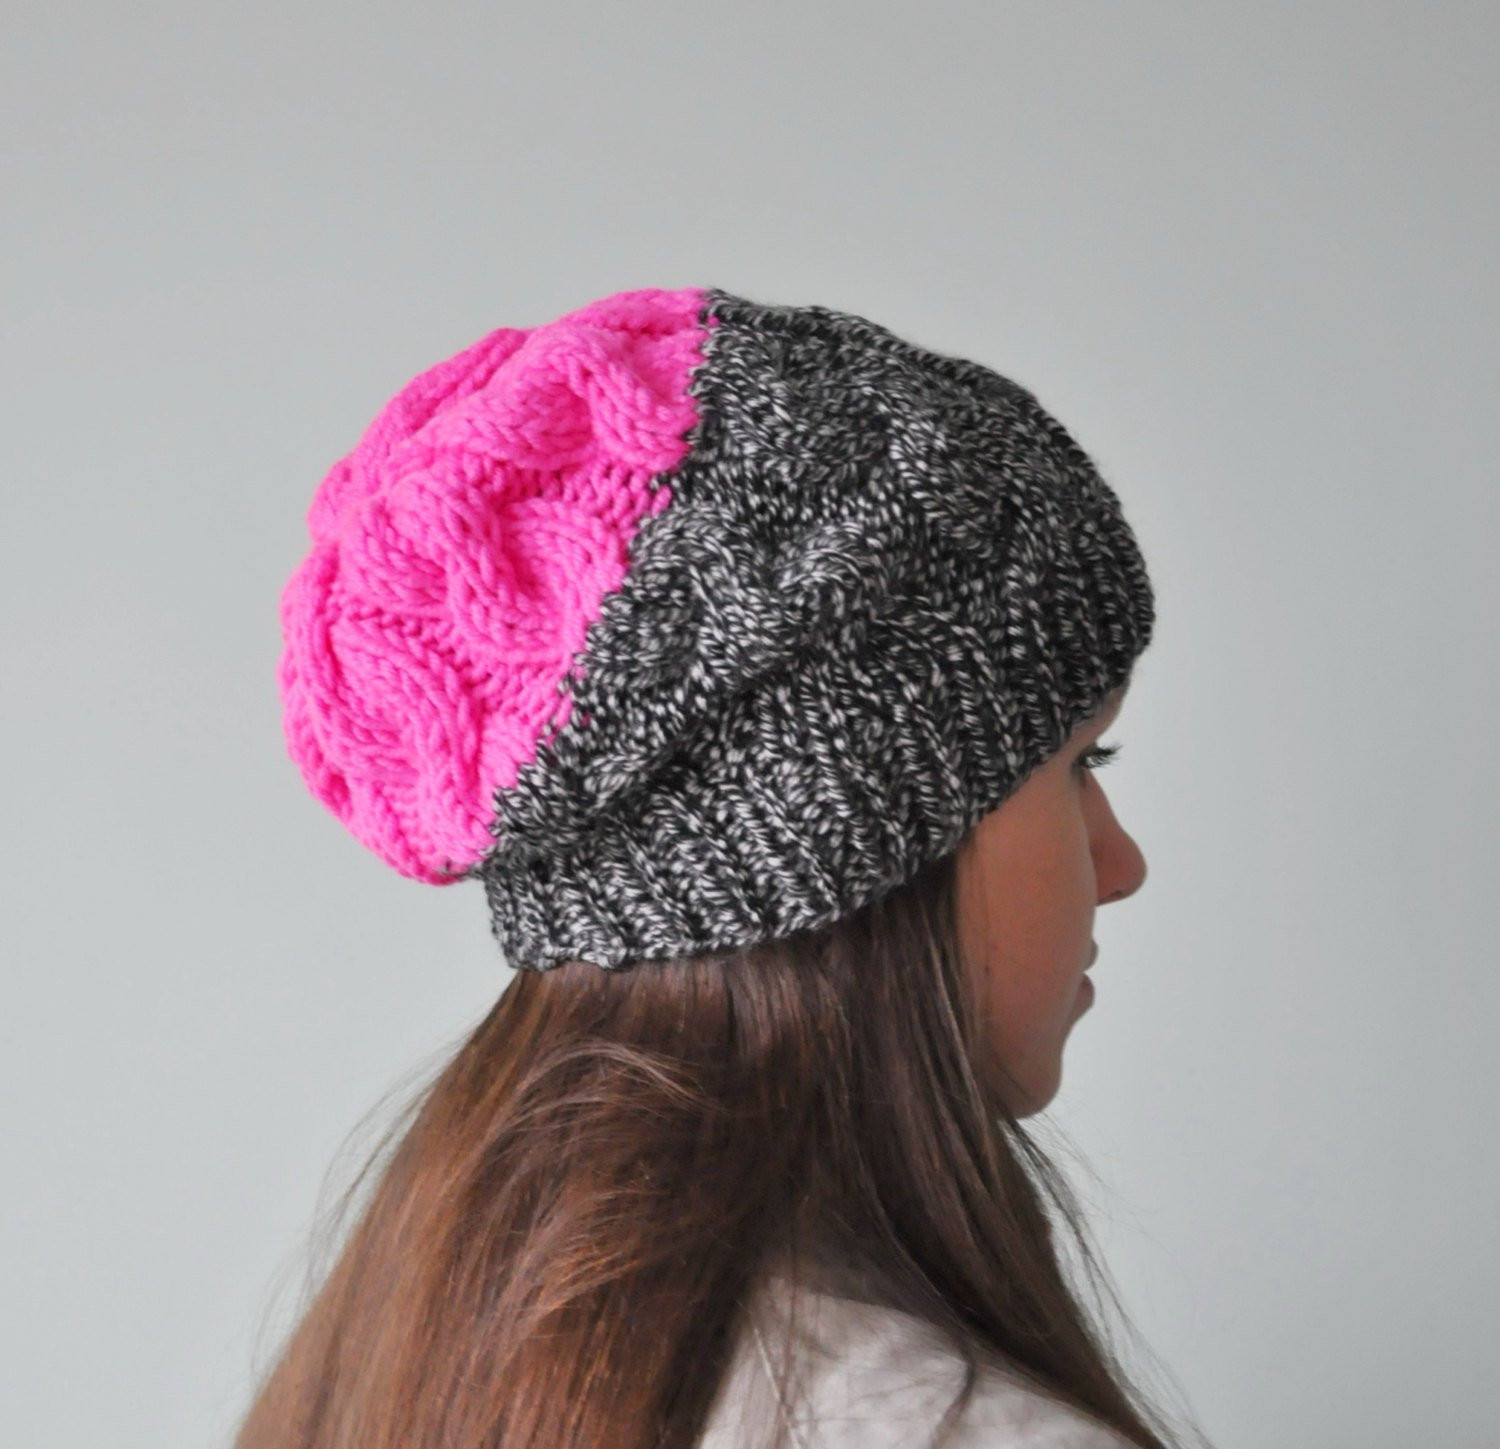 Neon Pink Cable Knit Beanie Hat Chunky Knit Hat by SOVAknits